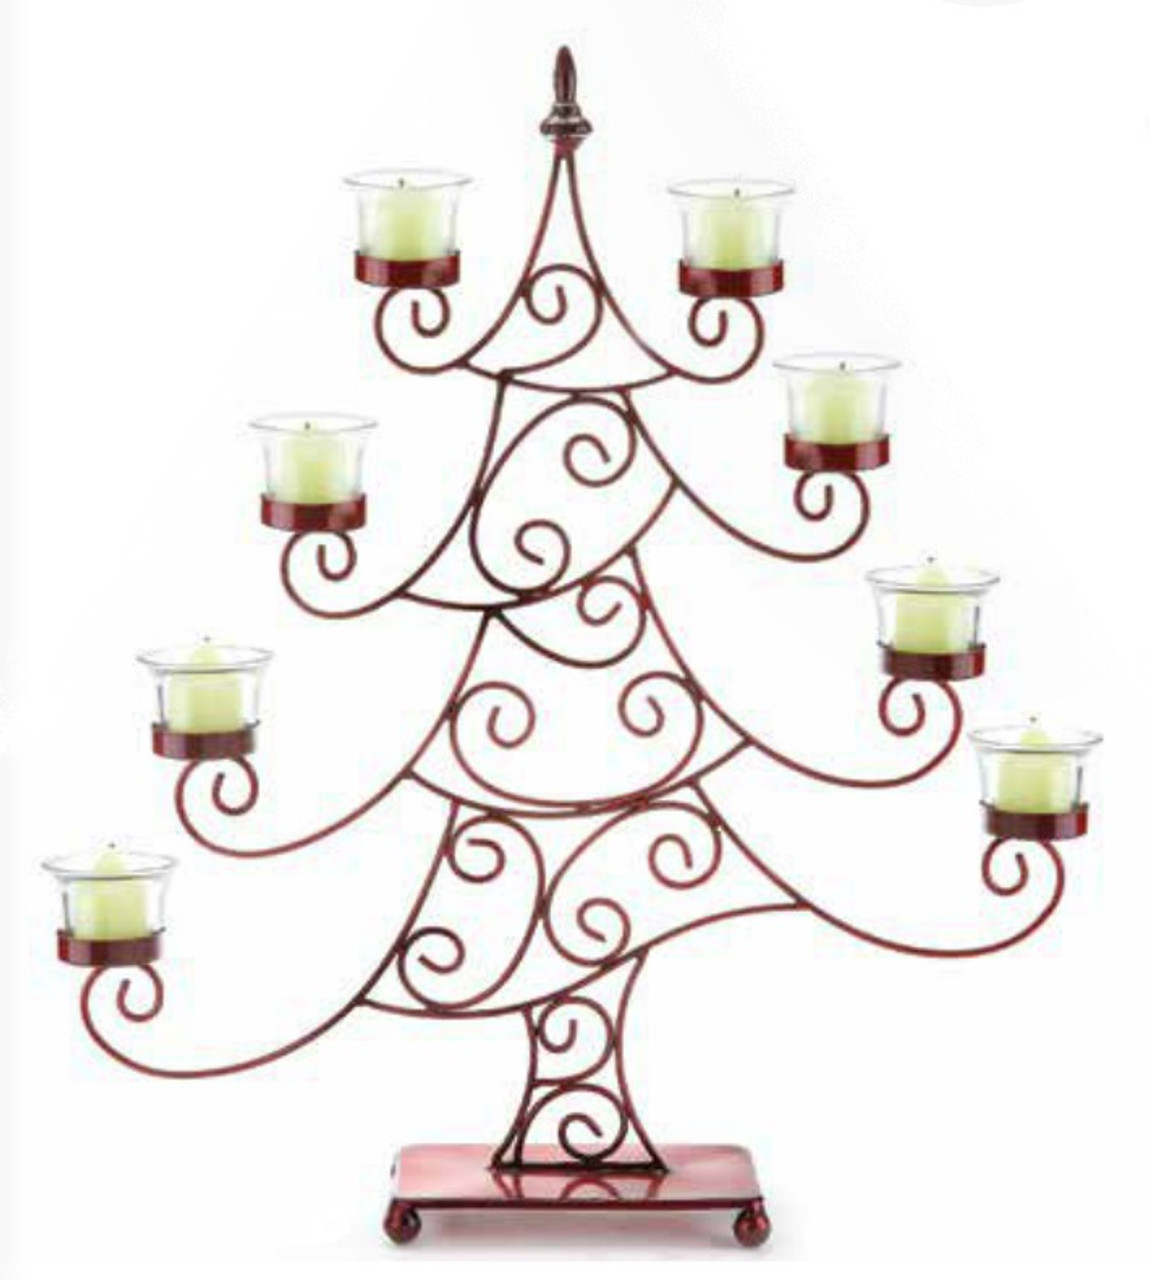 215 decorative red whimsical christmas tree votive candle holder 31572634 - How To Decorate Votive Candle Holders For Christmas